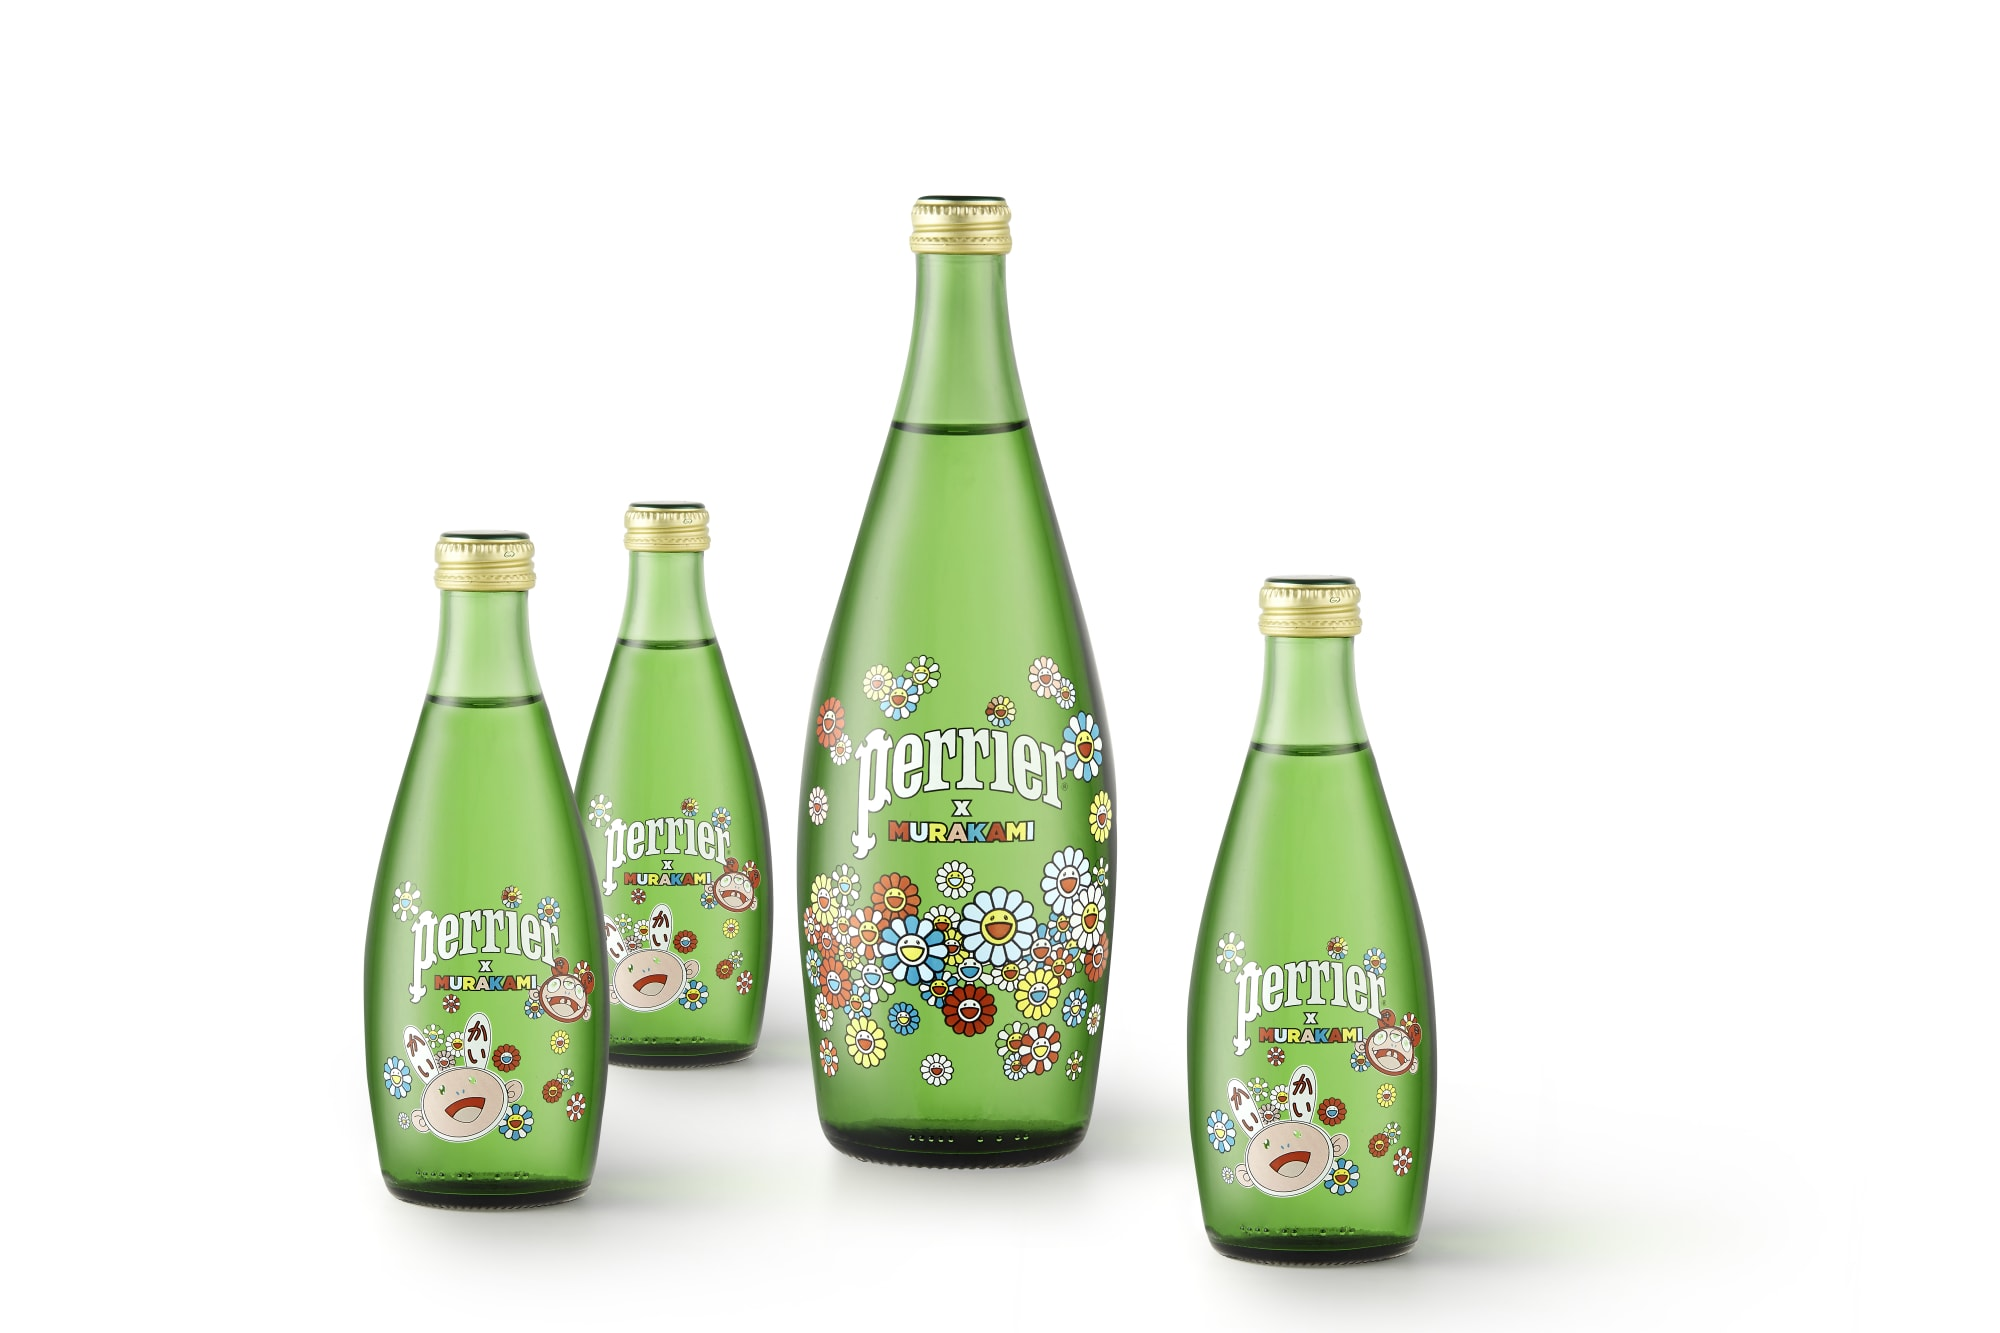 Perrier x Murakami collab: The pick-me-up beverage you need in 2020